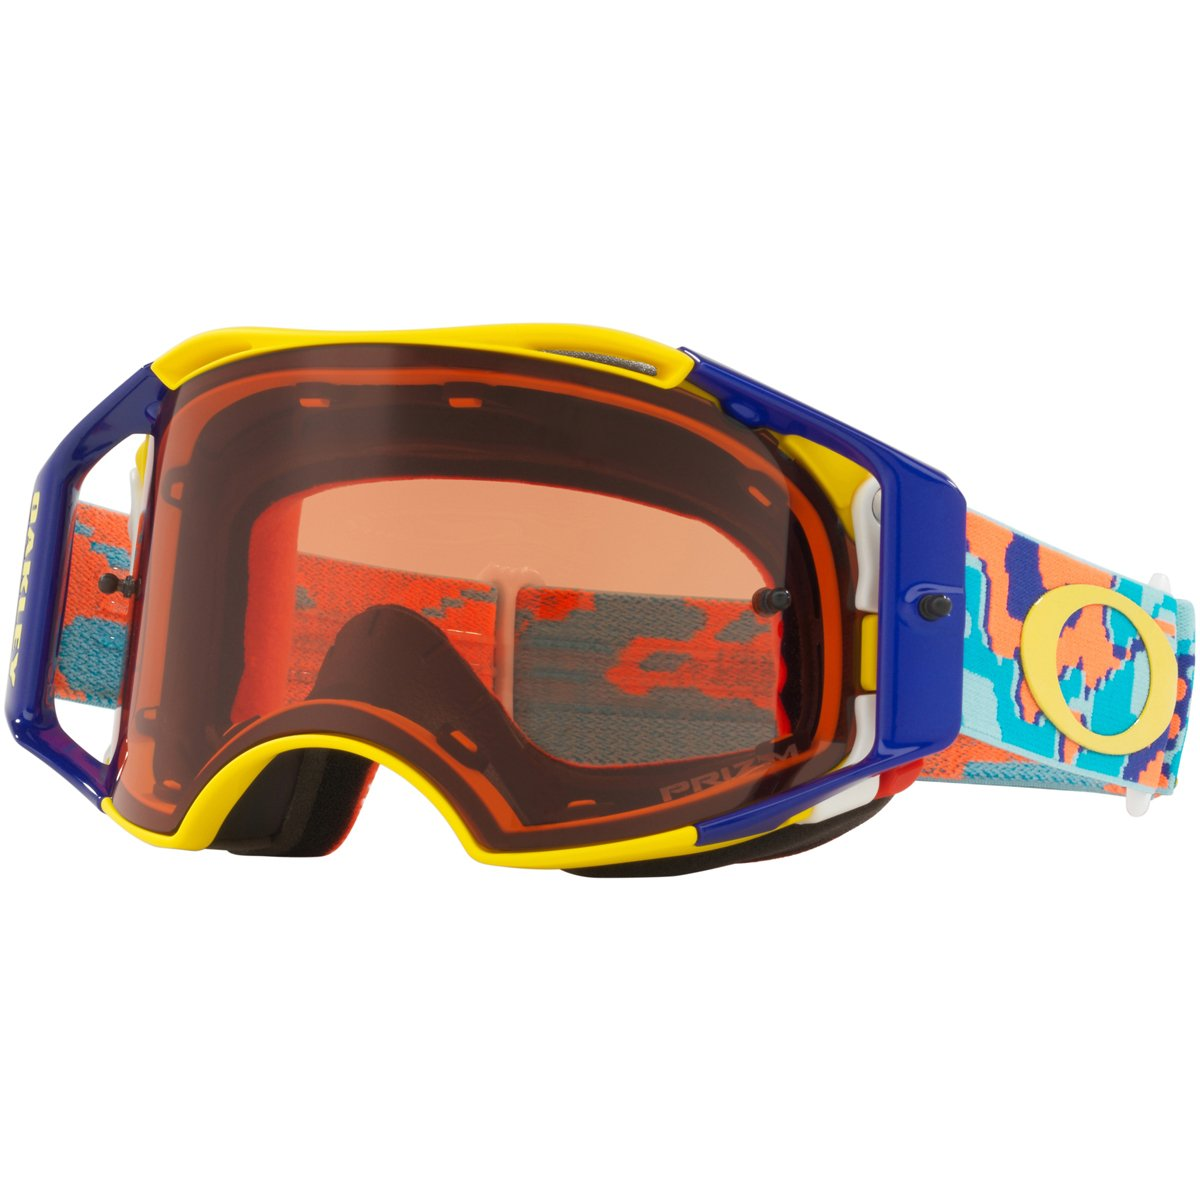 Oakley ABMX Thermo Camo OrgBlue with PrizmMXBronze unisex-adult Goggles (Blue, Medium), 1 Pack